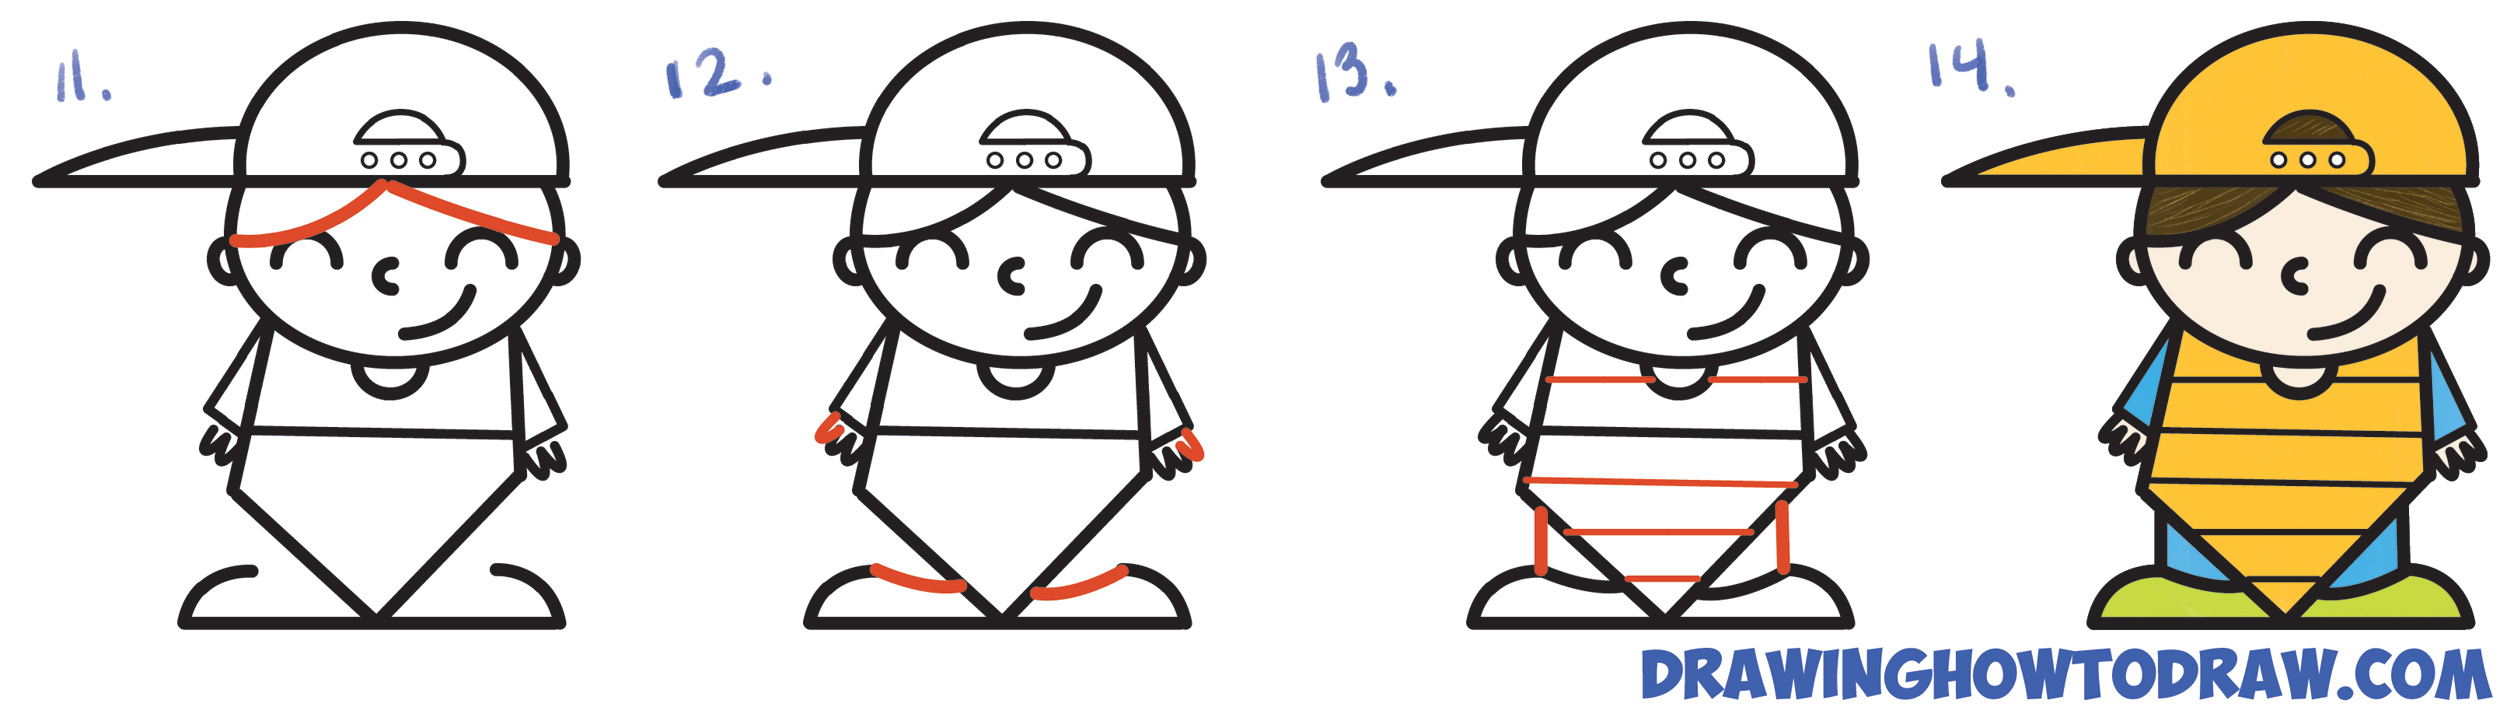 how to draw a cute cartoon kid baseball catcher word cartoon simple steps drawing lesson for